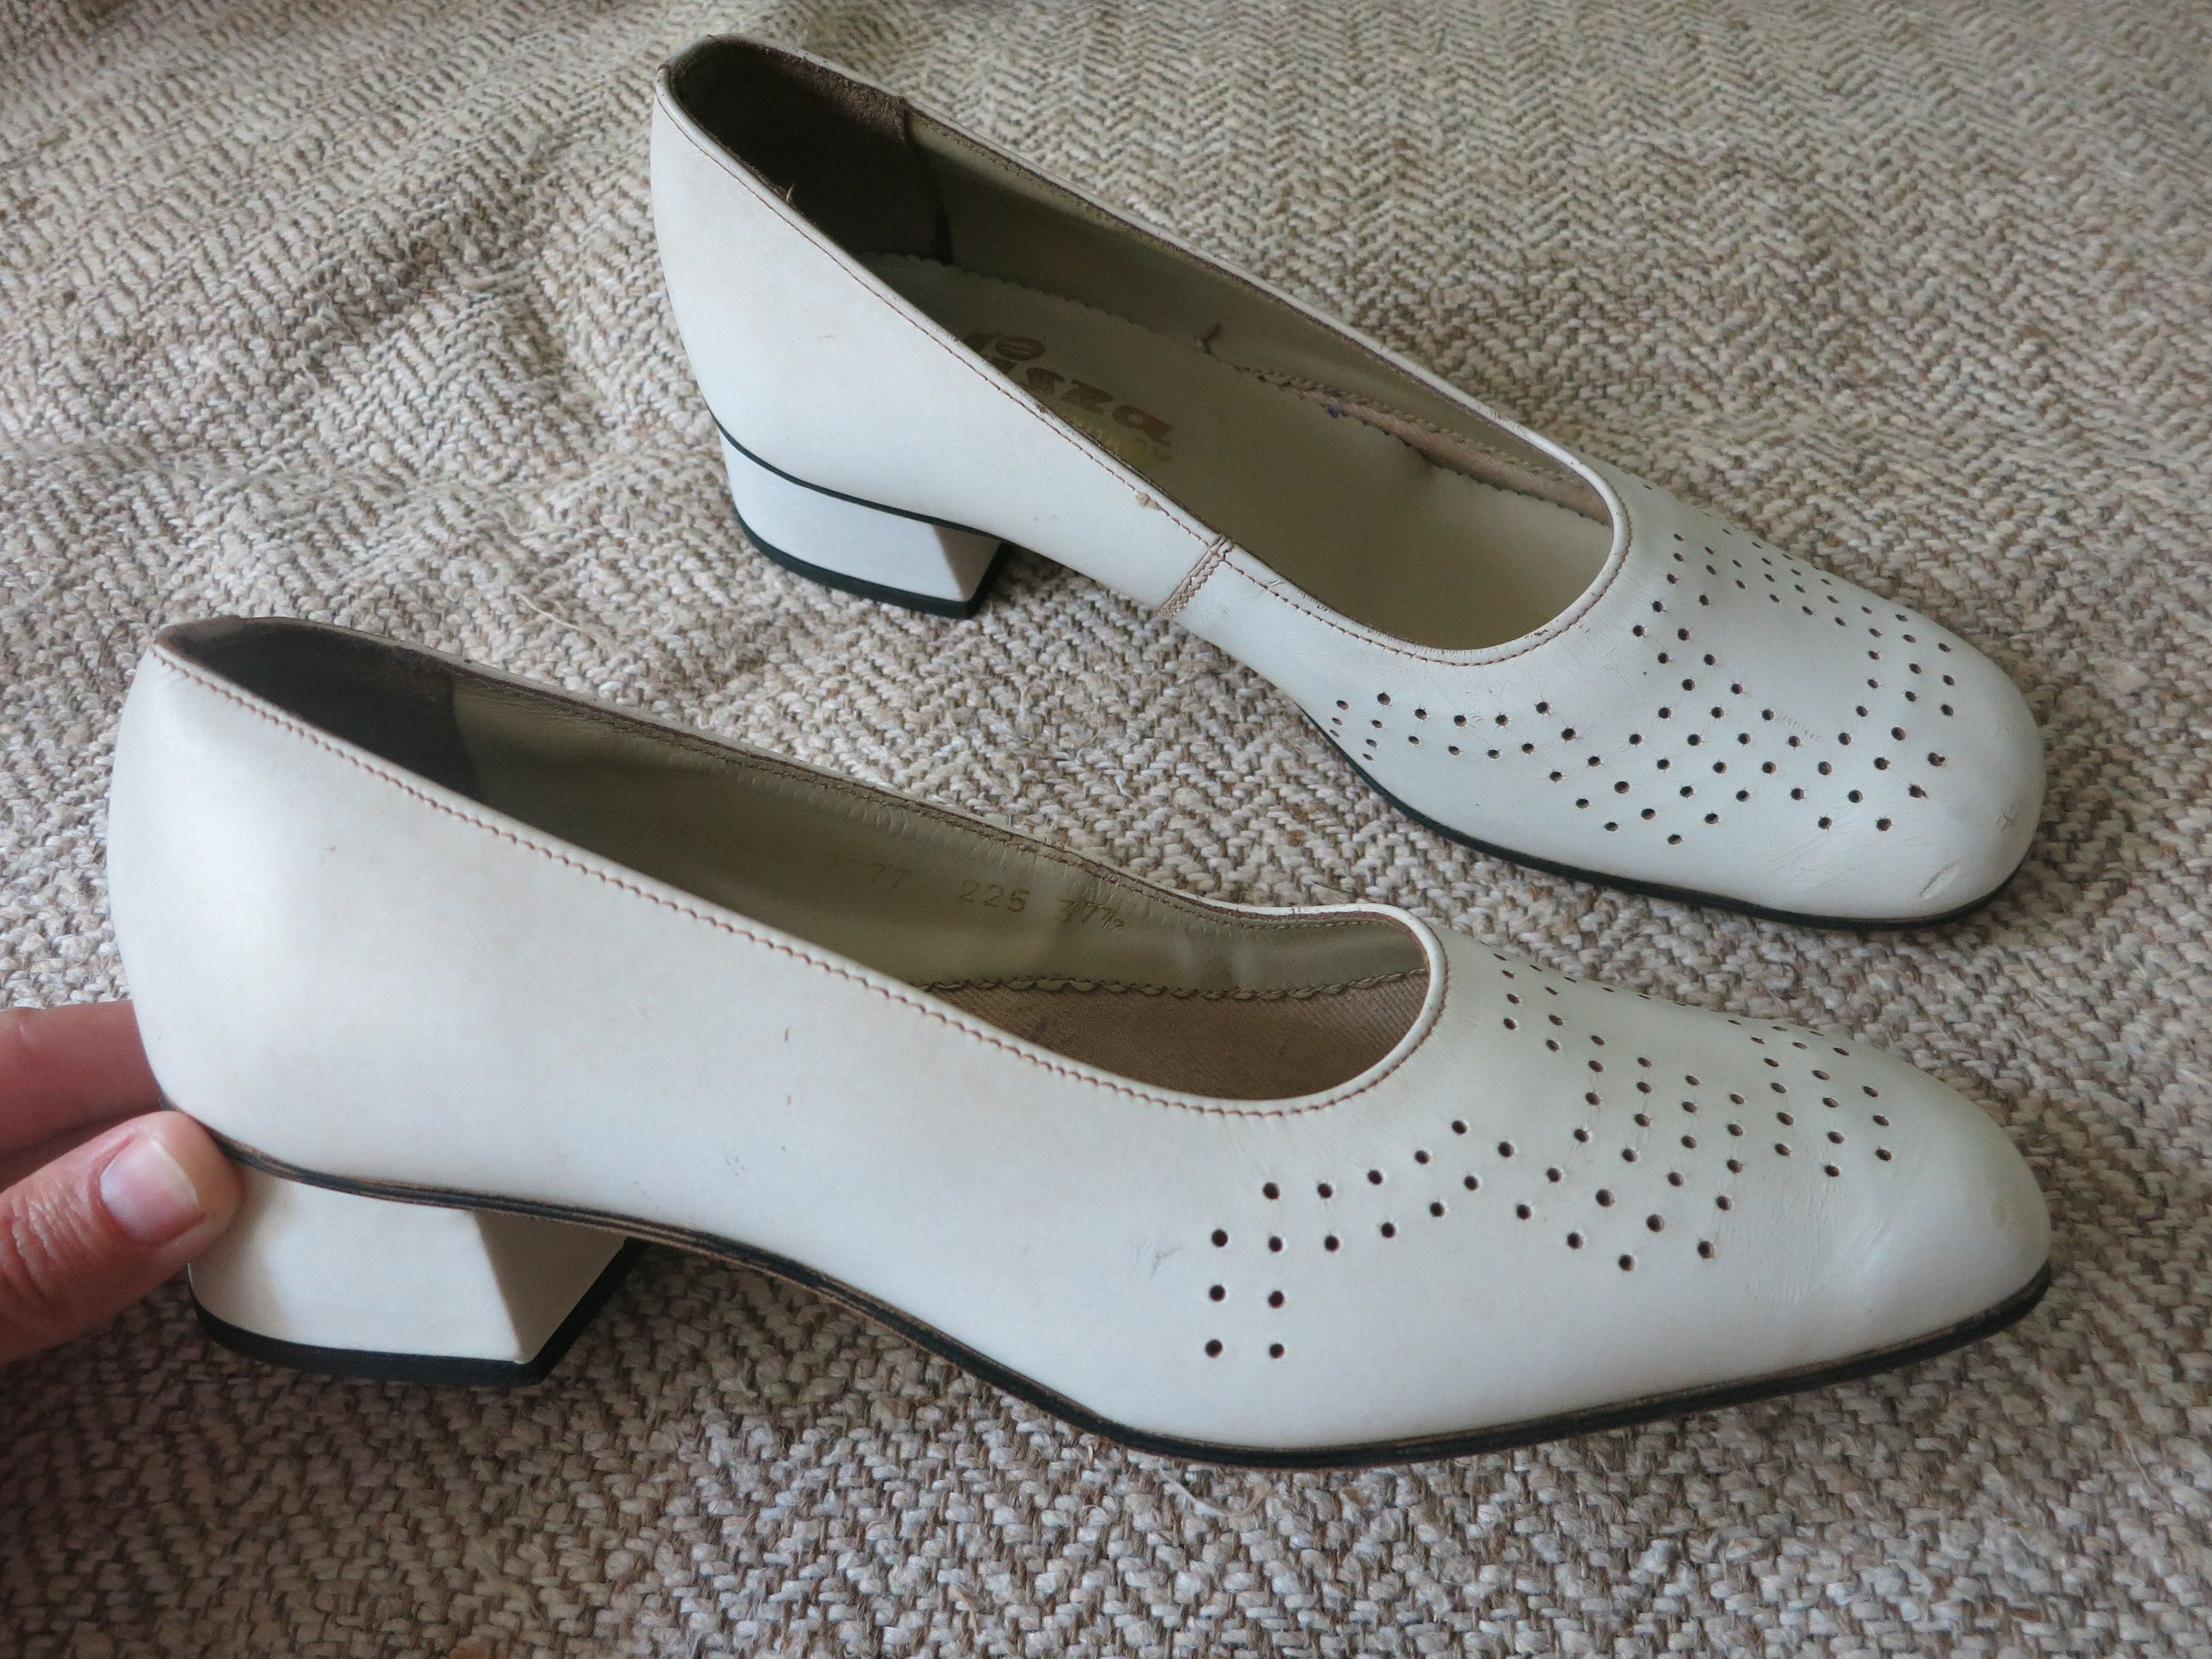 5e3183bd1 Summer Russian vintage white leather shoes with heelds for womens Size EU  36